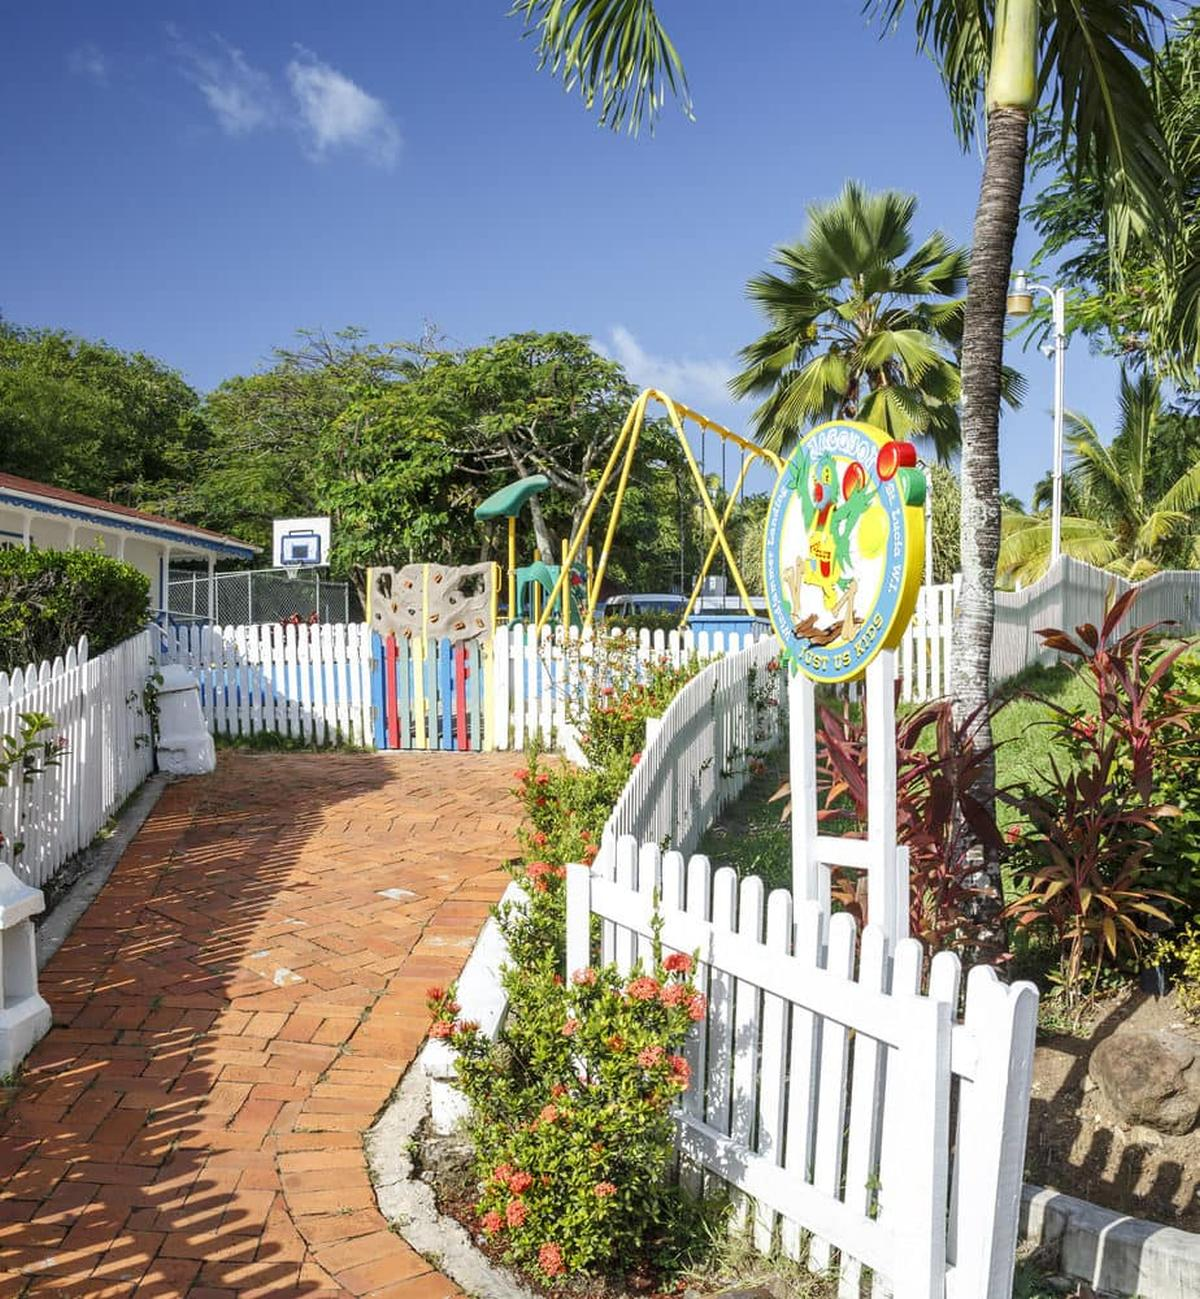 content/hotel/St. Lucia hotelek/Windjammer Landing Villa Beach Resort/Our/windjammerlandingvillabeachresort-our-02.jpg